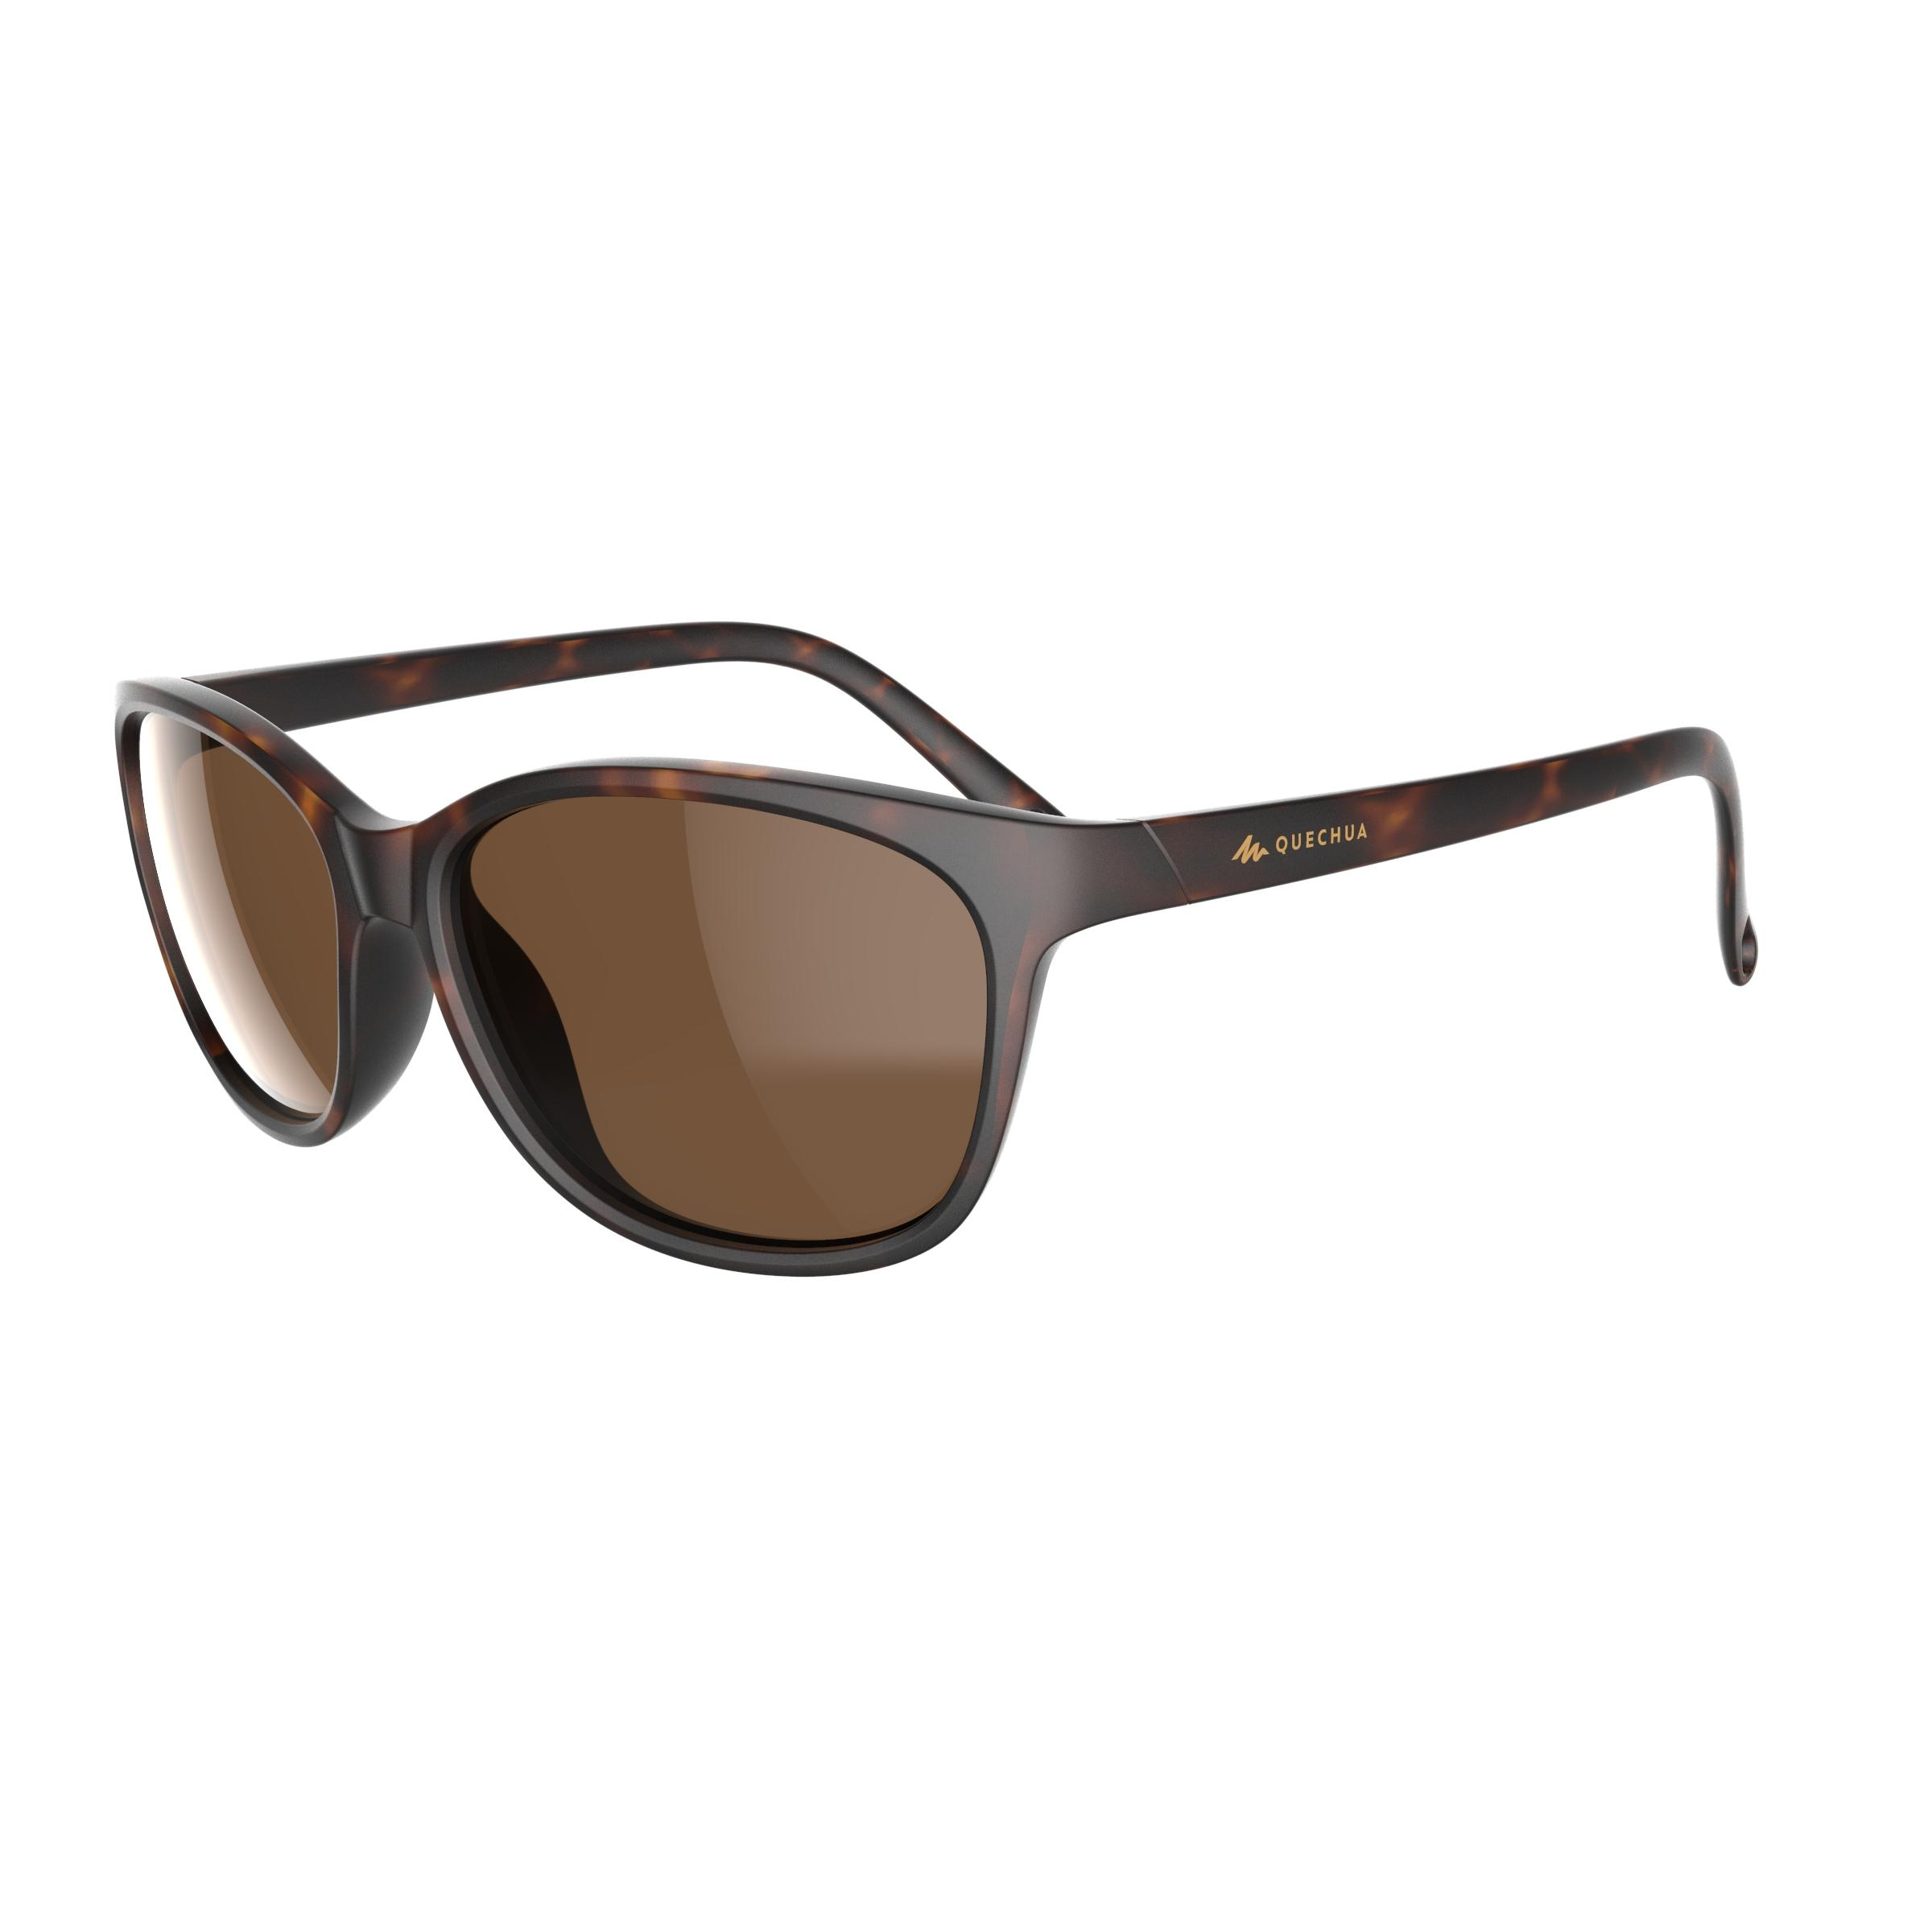 MH 140W Adult's Category 3 Hiking Sunglasses - Brown